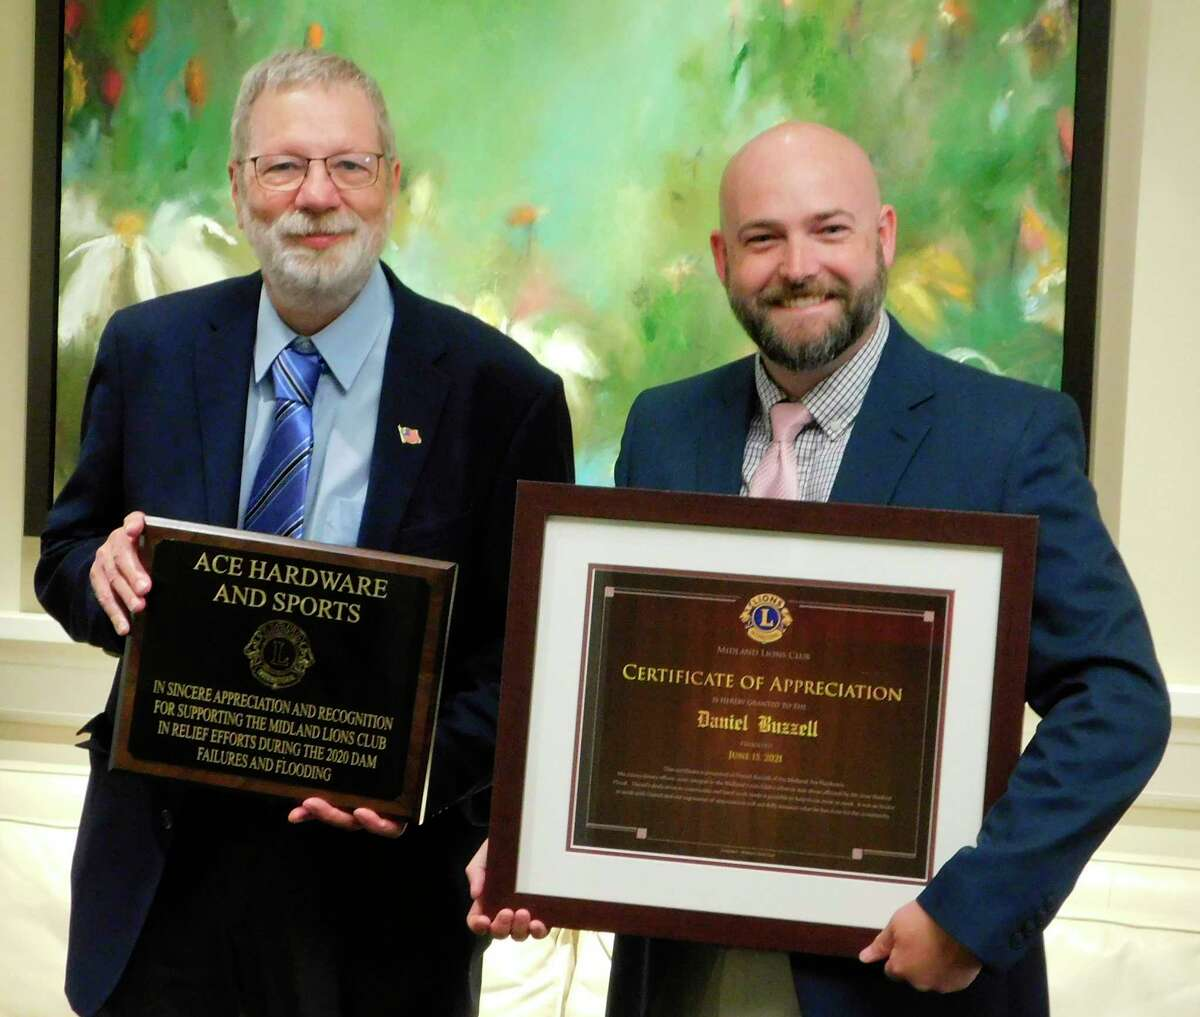 Ace Hardware and Sports owner Greg White, left, and manager Daniel Buzzell recently received awards from the Midland Lions Club for their help with the club's project of providing cleaning materials to flood victims.